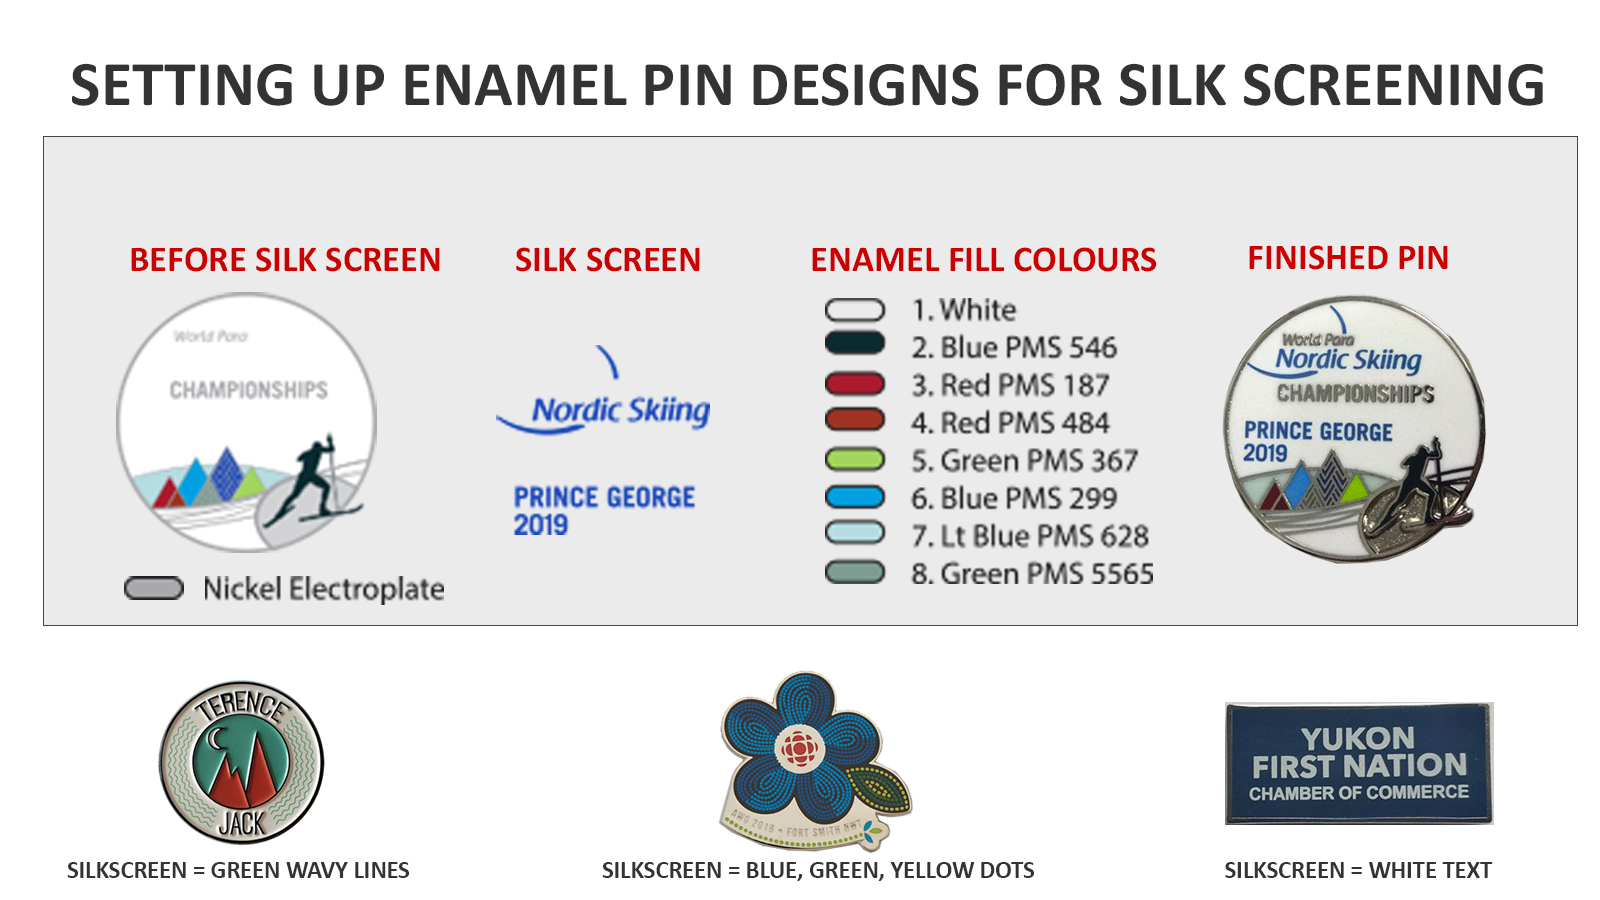 how to use silkscreens in enamel pin designs